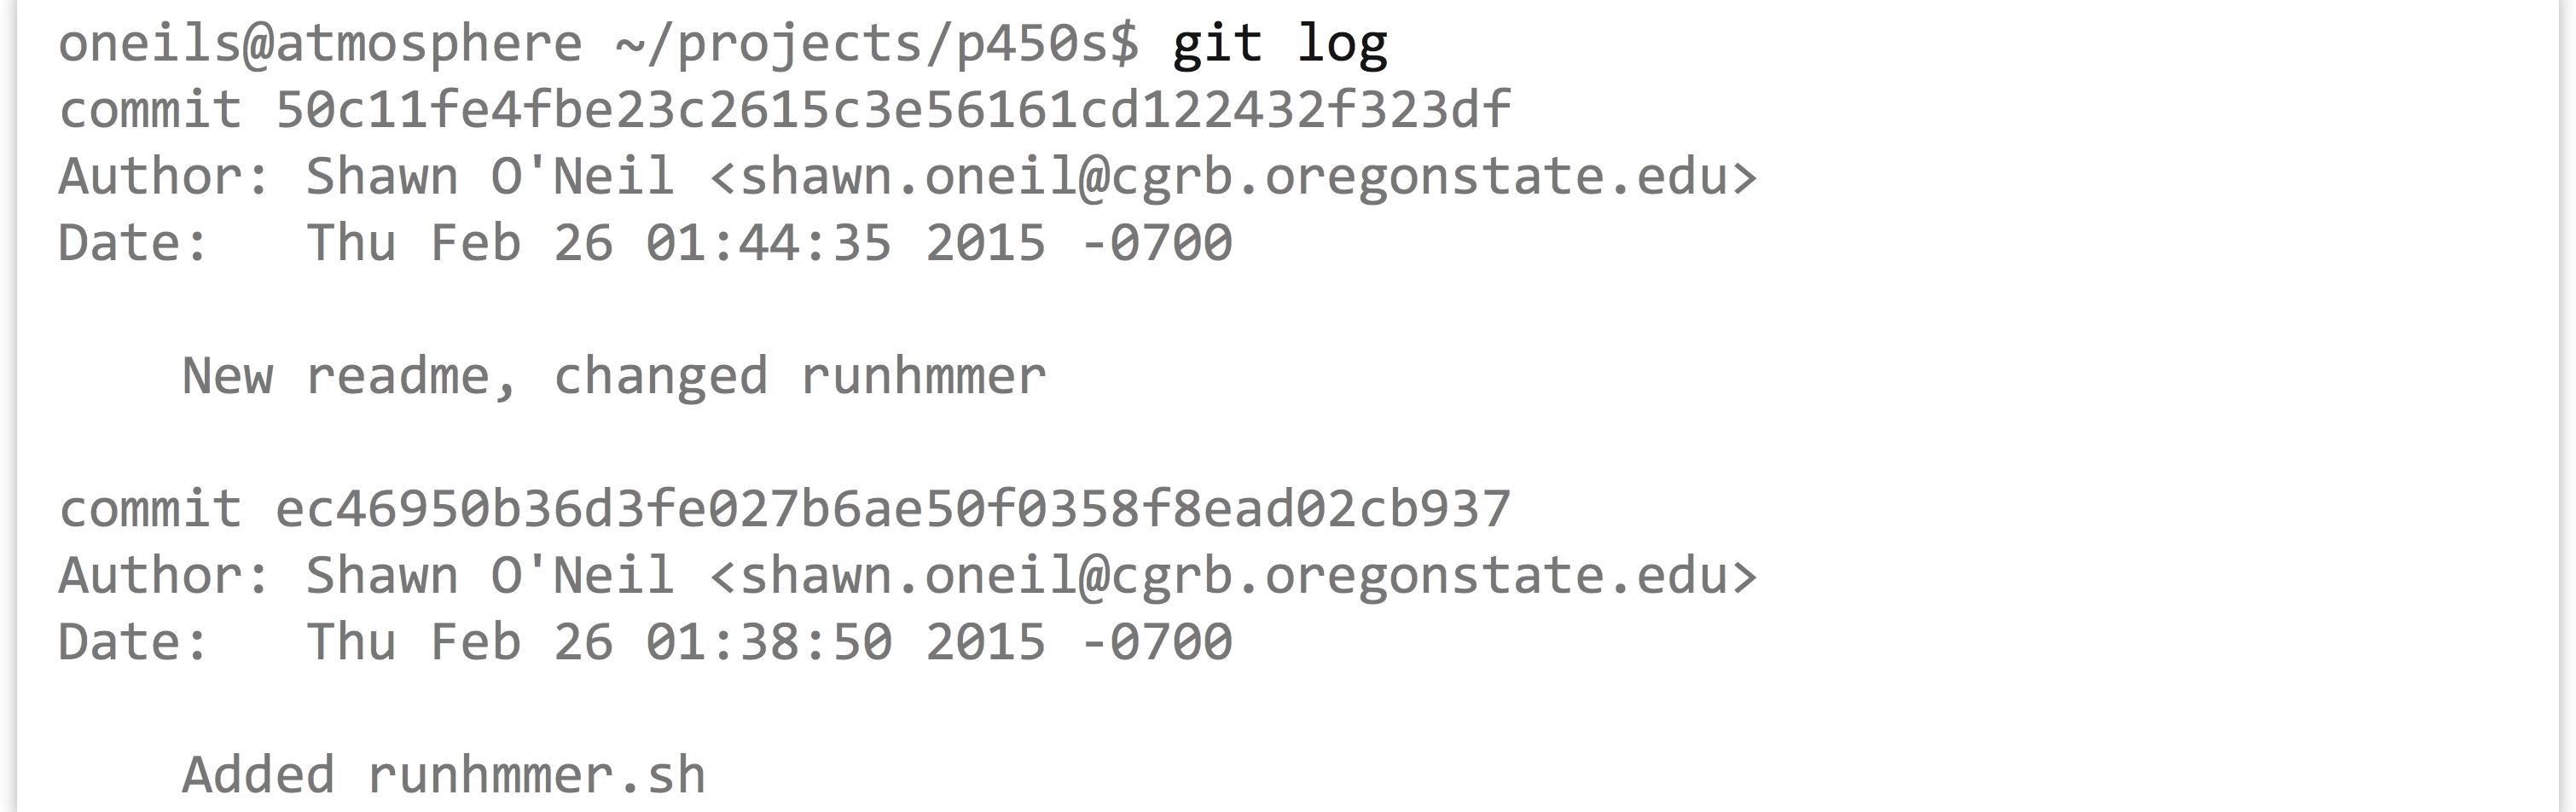 I.12_32_unix_159_10_git_log